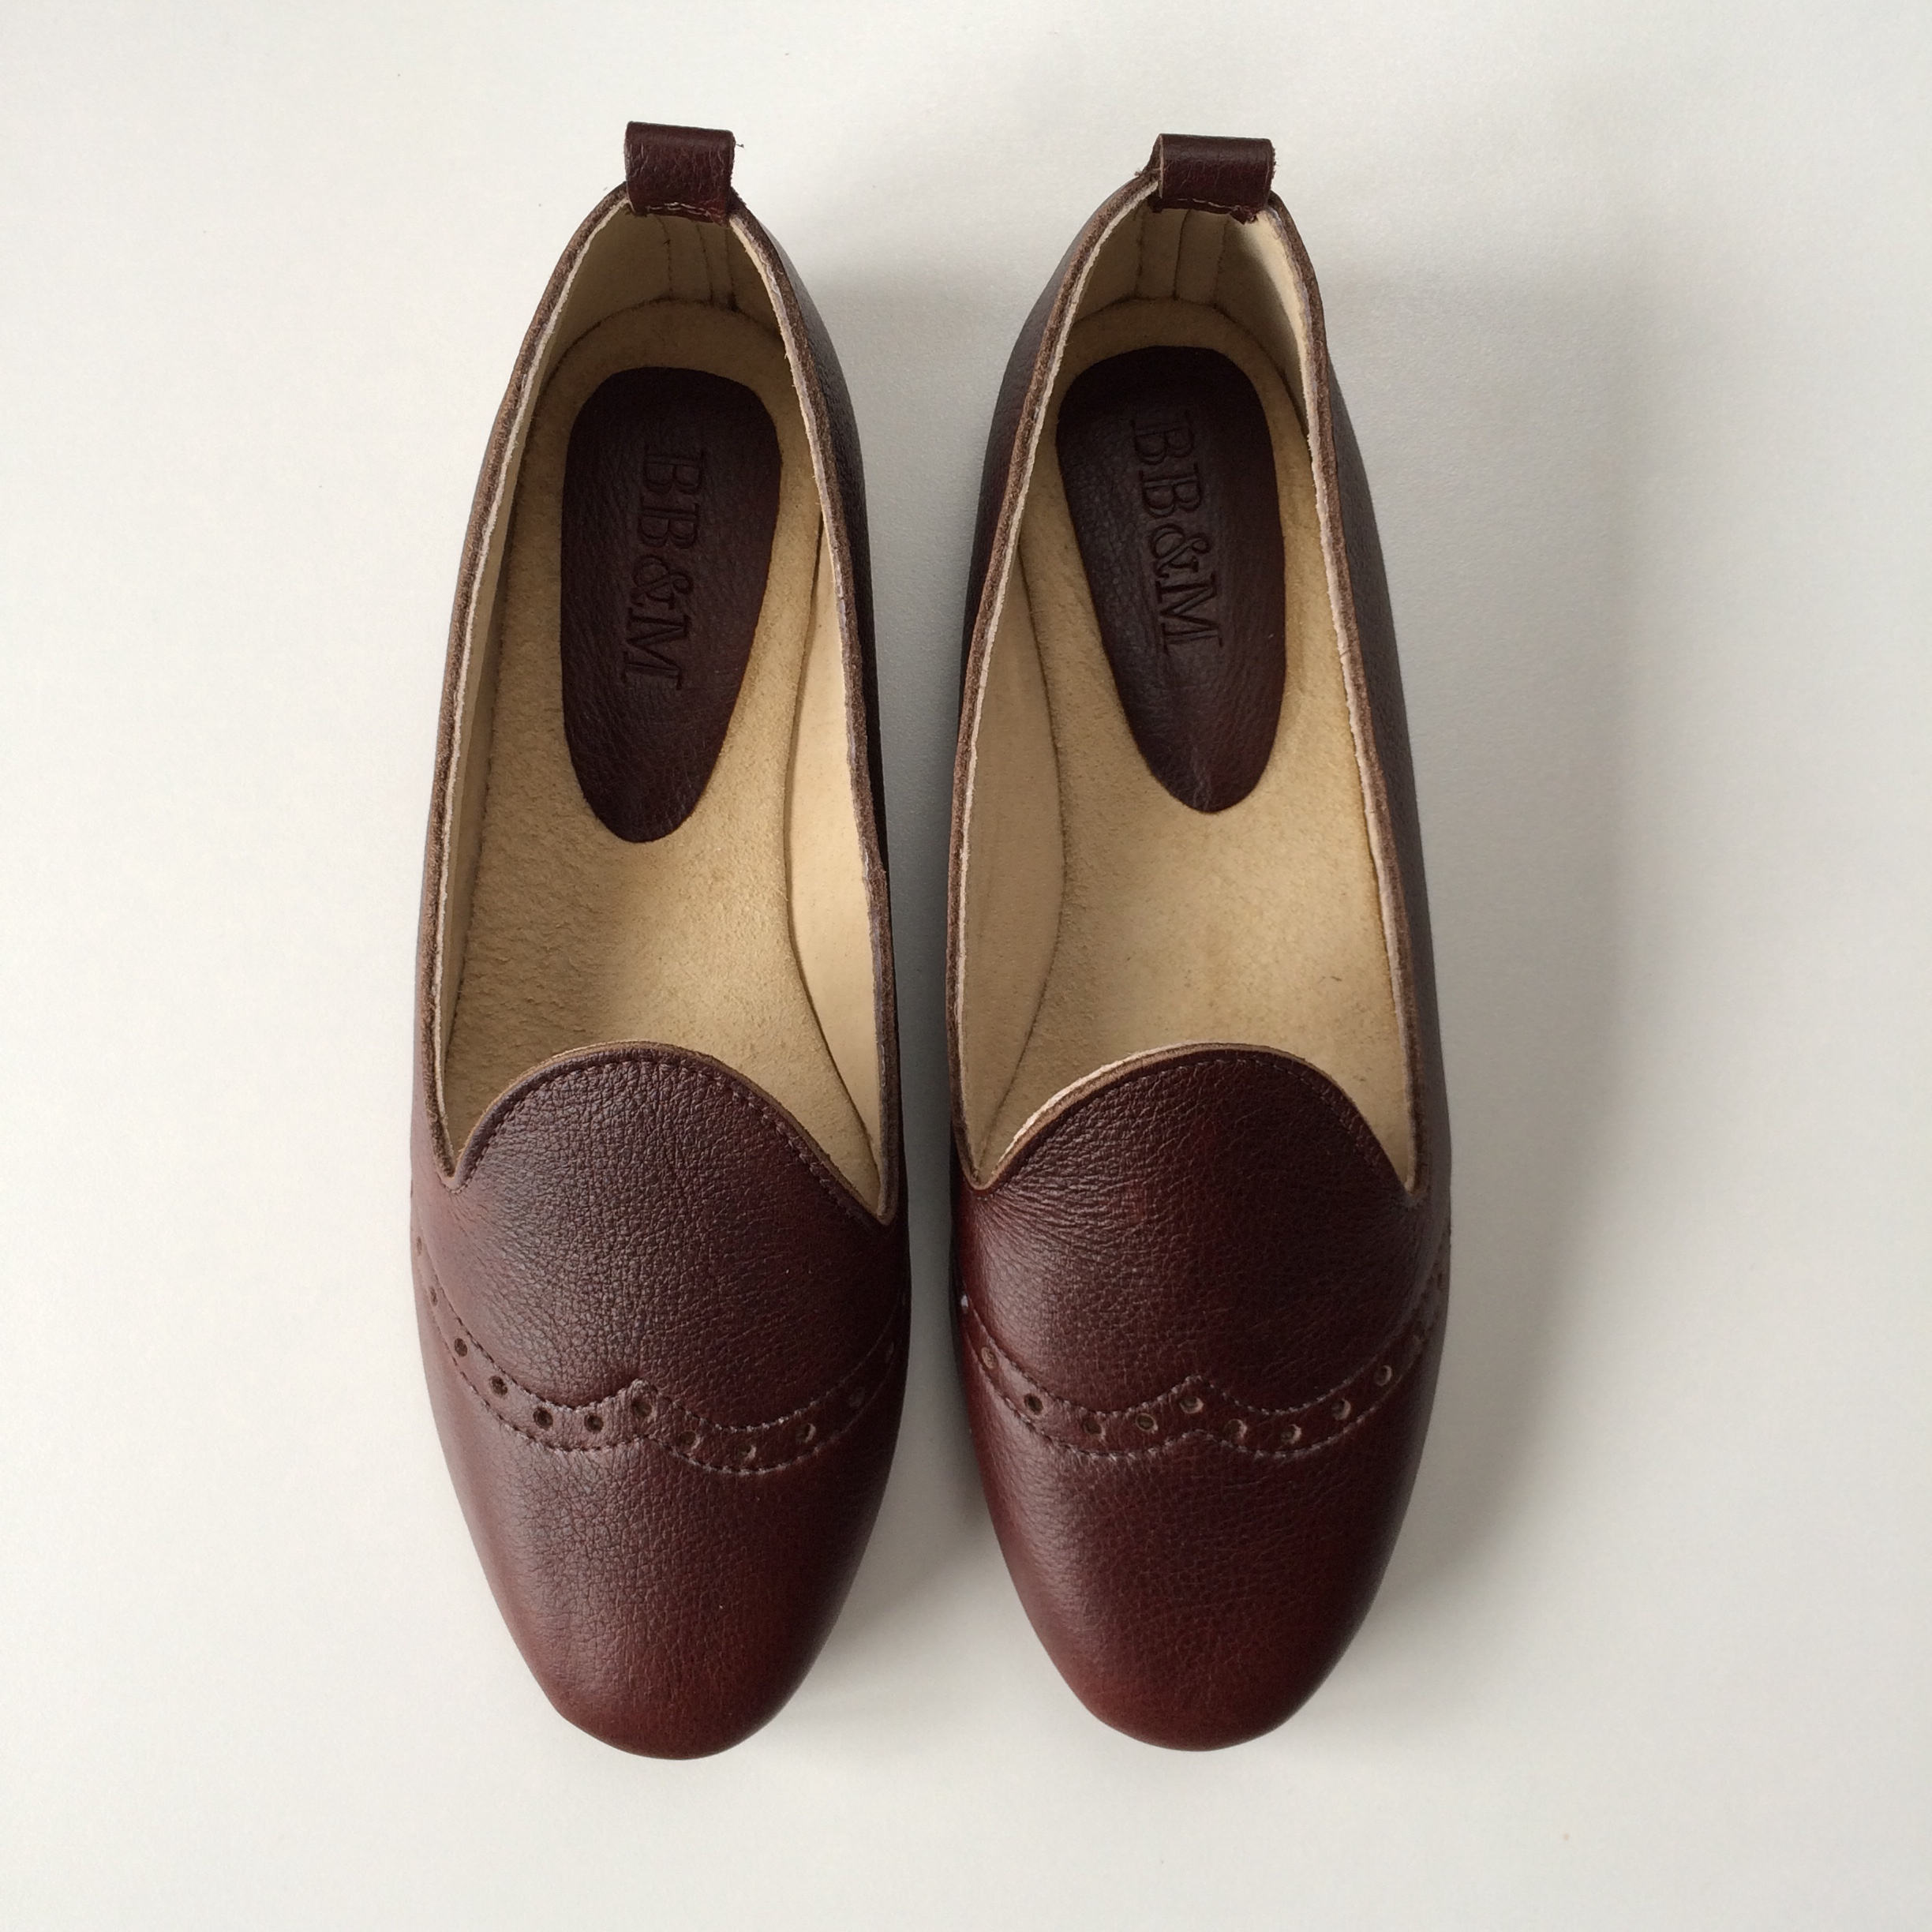 Ladies Morocco Choc Loafer - LF3